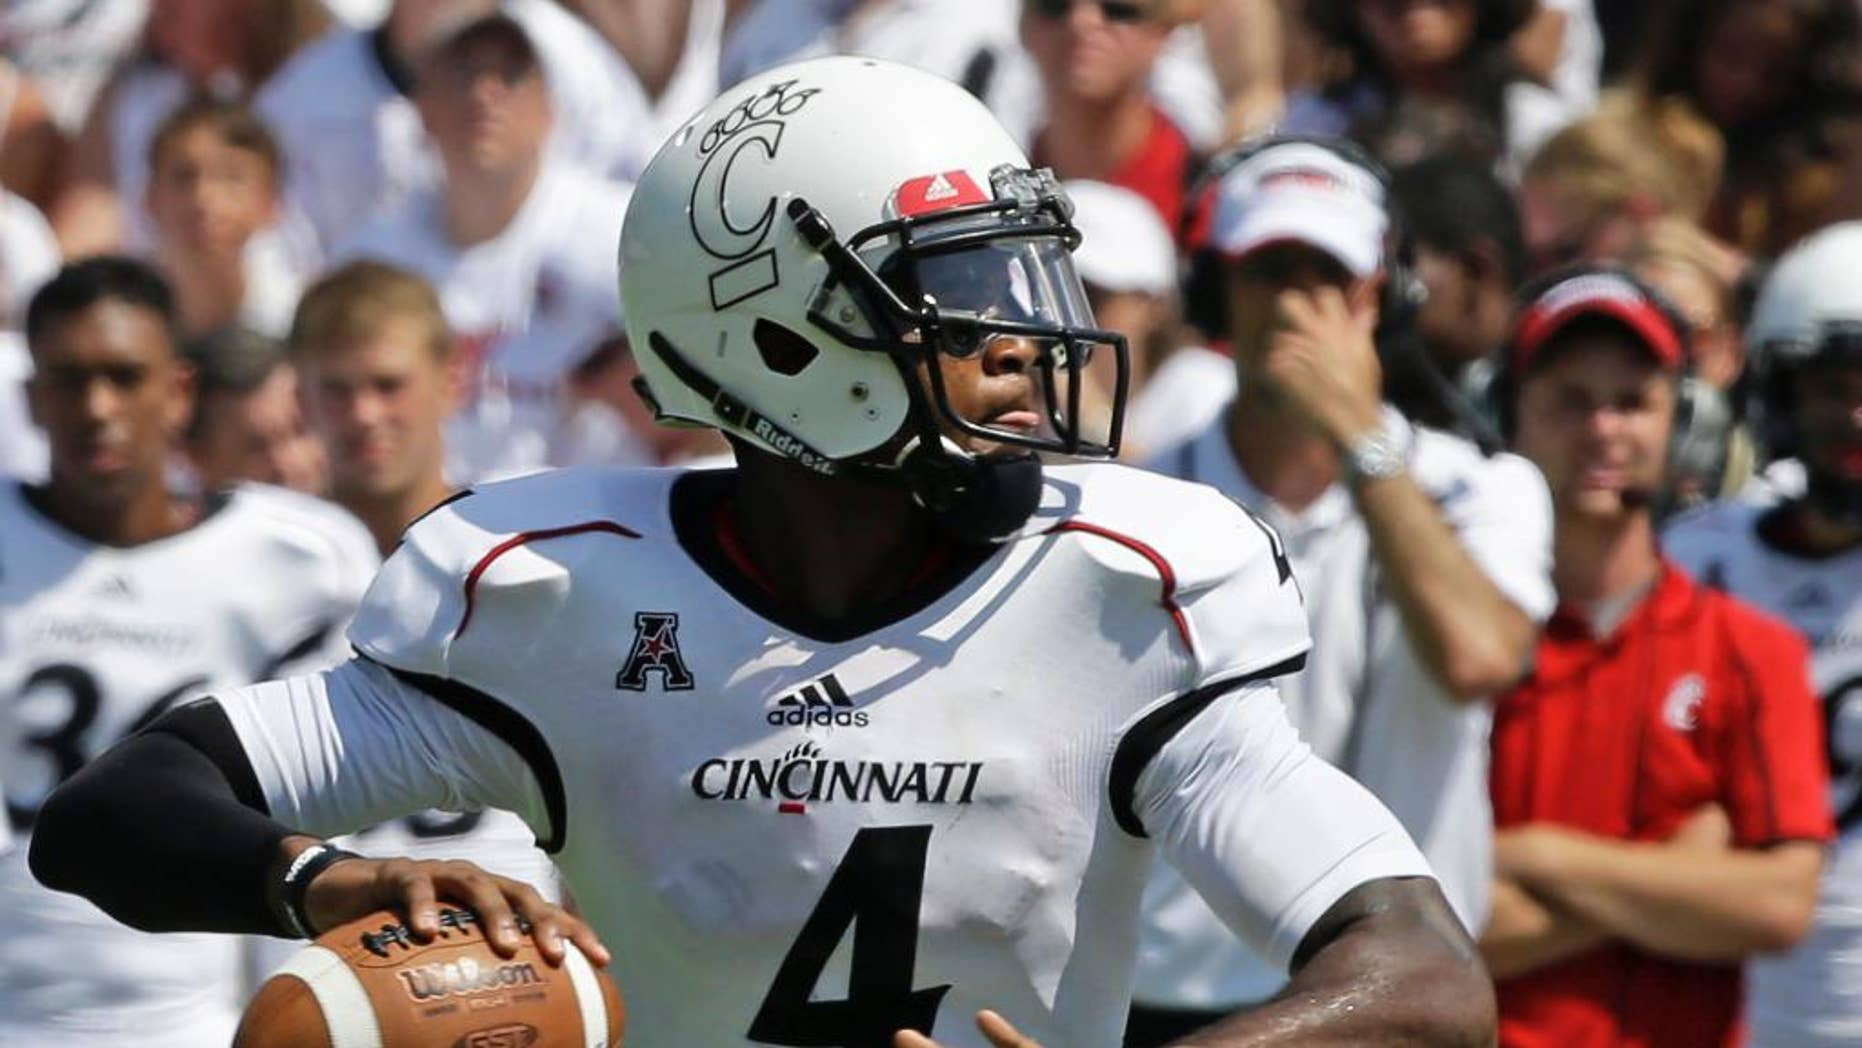 FILE - In this Aug. 31, 2013, file photo, Cincinnati quarterback Munchie Legaux throws a pass in an NCAA college football game in Cincinnati. Legaux received another year of eligibility when he suffered a knee injury in the fall of 2013 and was able to briefly play as a backup in the Bearcats win over Toledo last Friday. (AP Photo/Al Behrman, File)